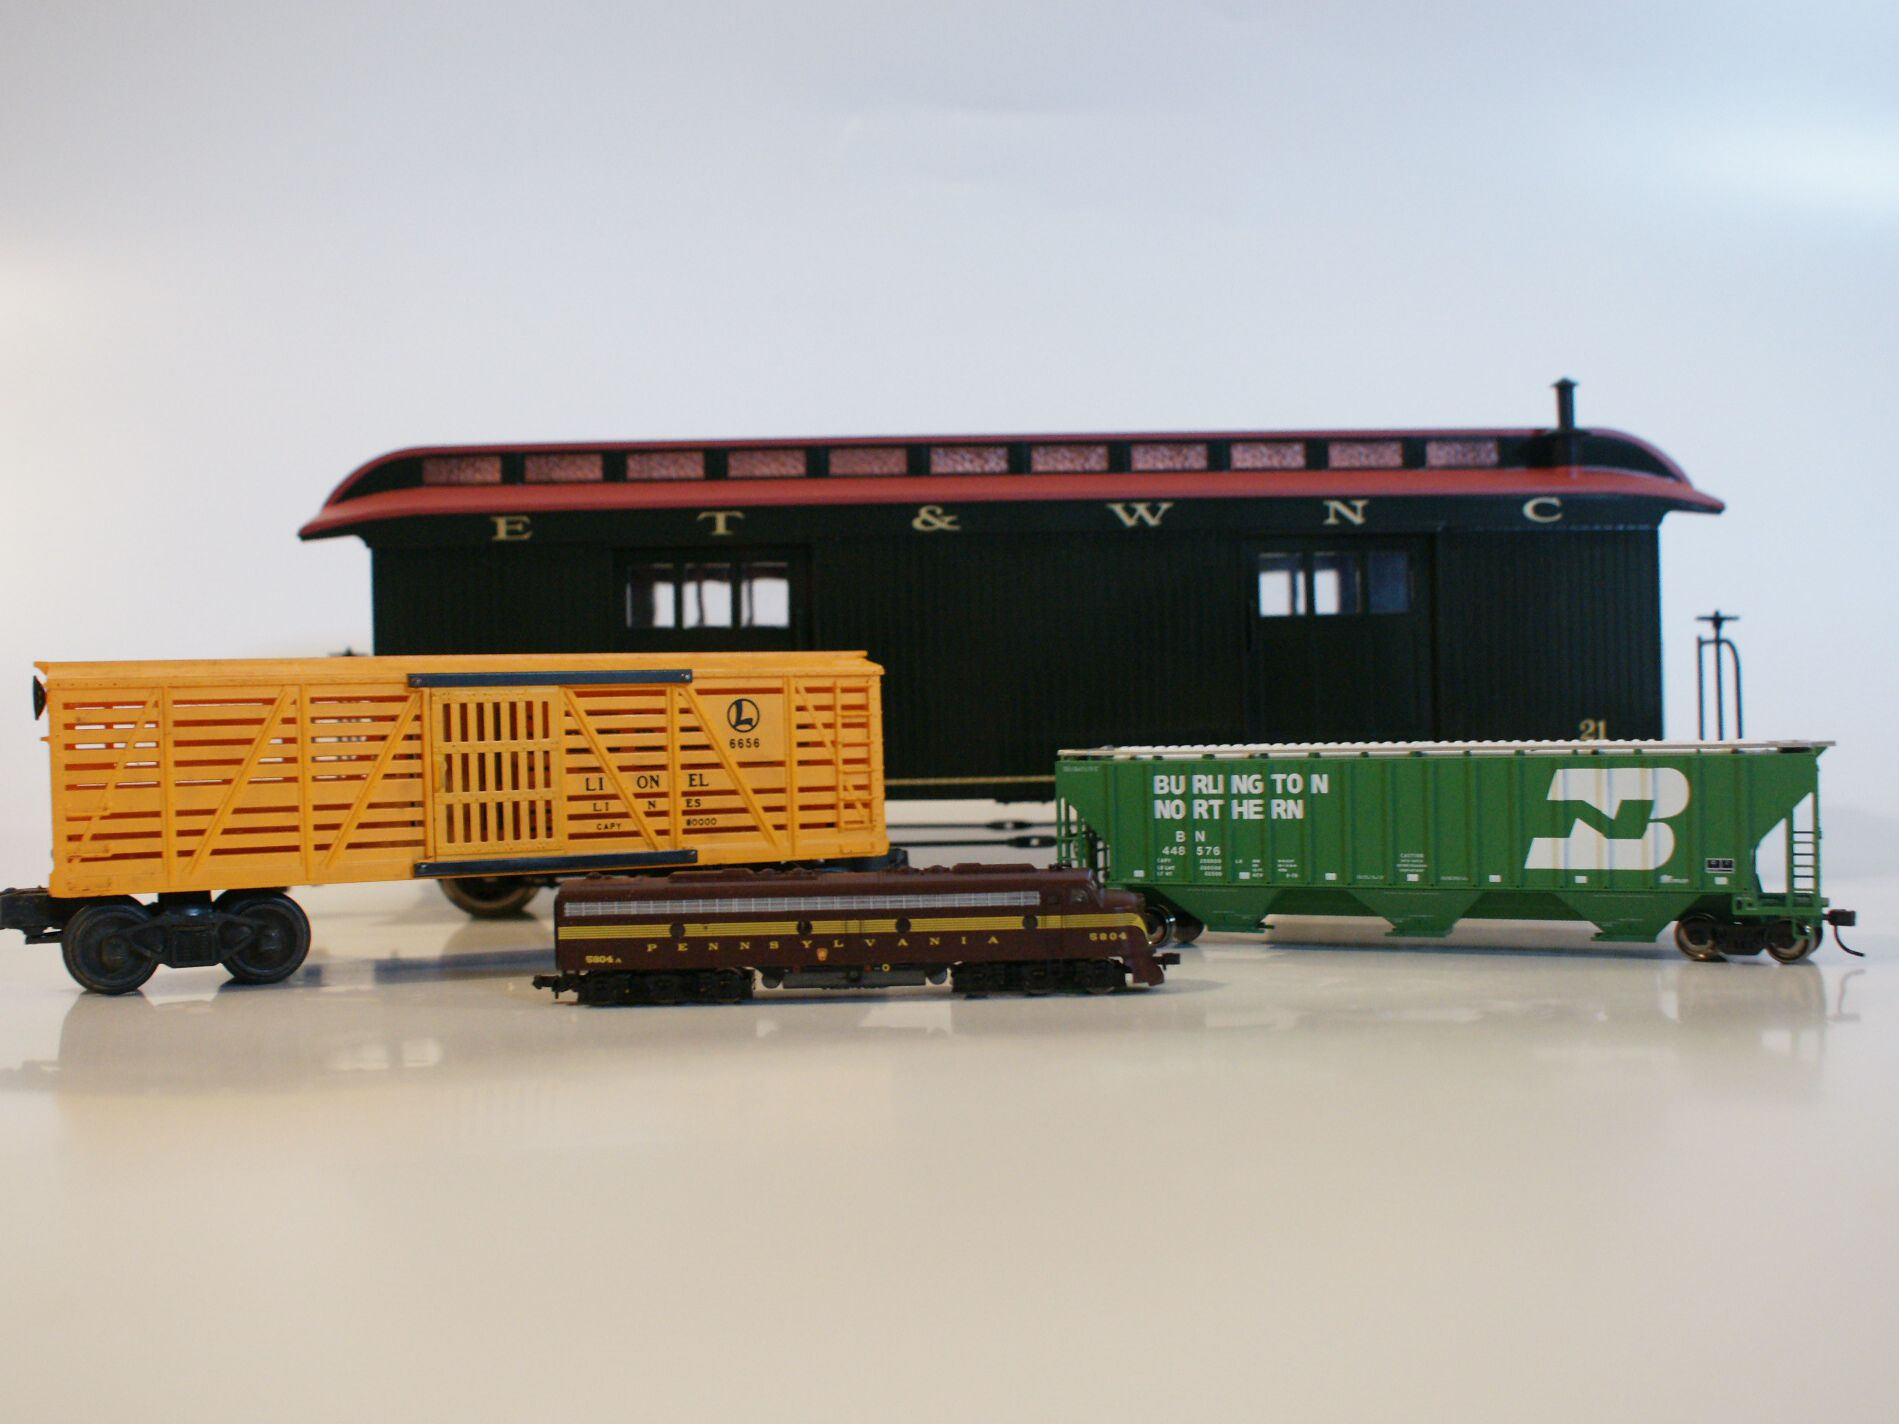 How to Choose the Right Model Train Set